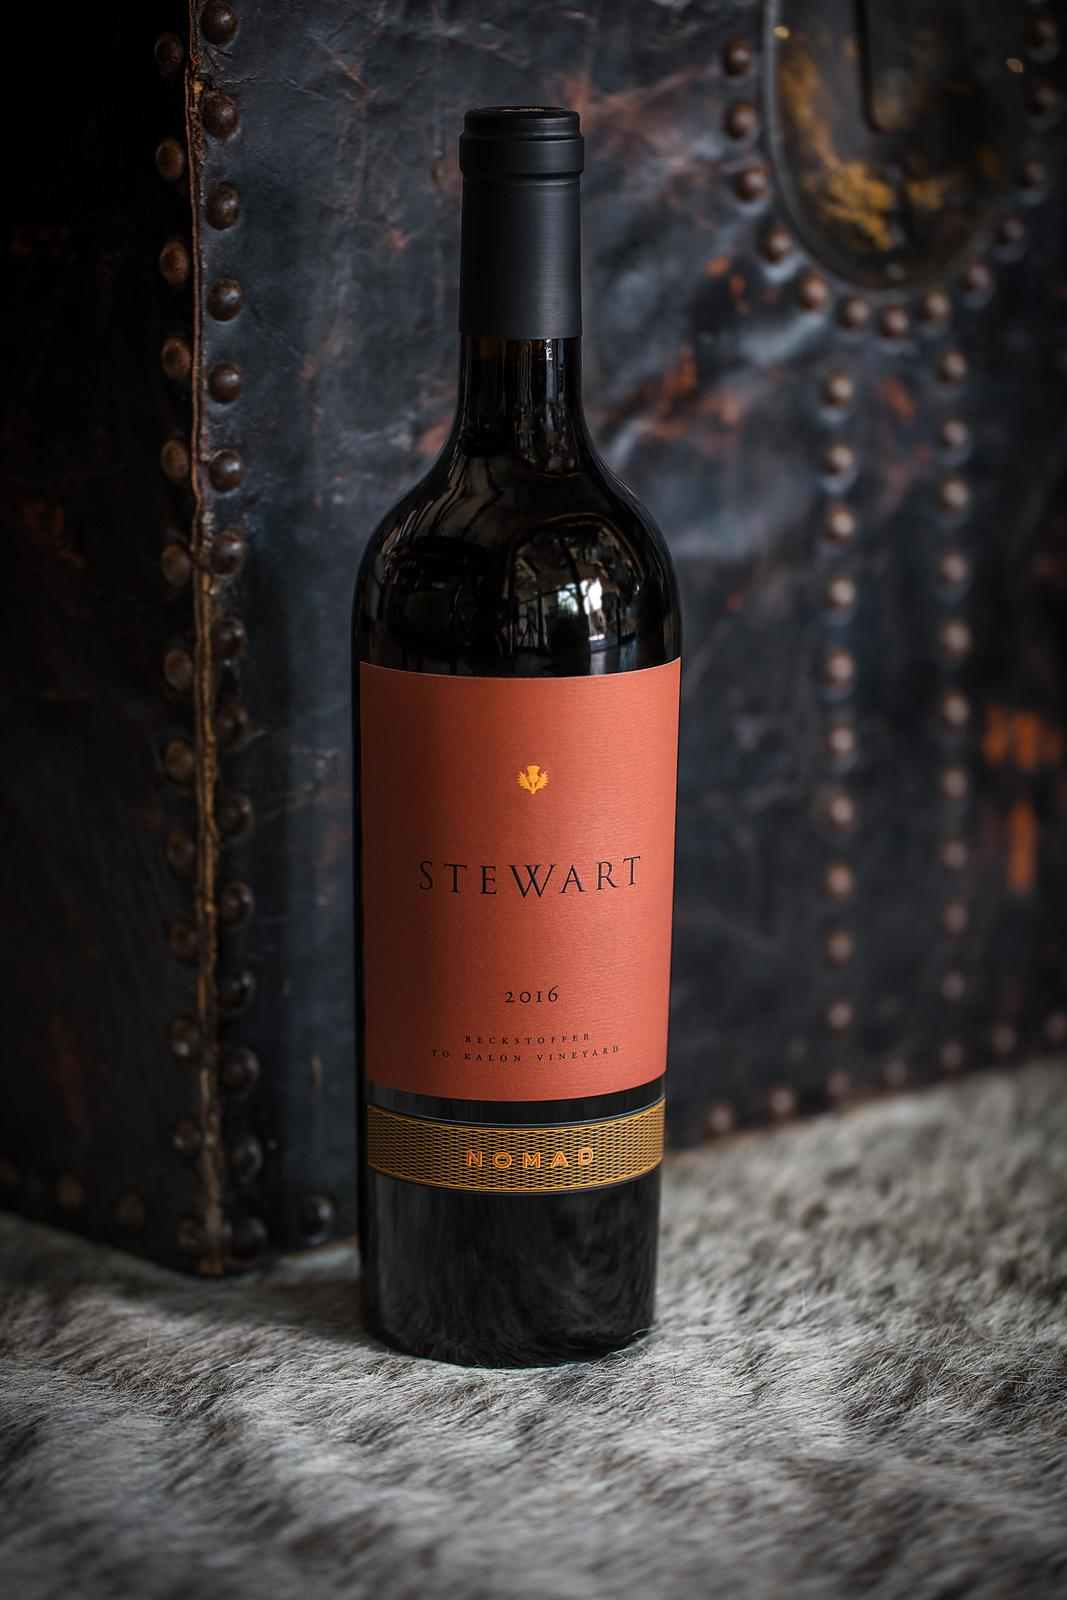 Wine beauty and lifestyle photography for Stewart Cellars in Yountville, Napa County by Jason Tinacci